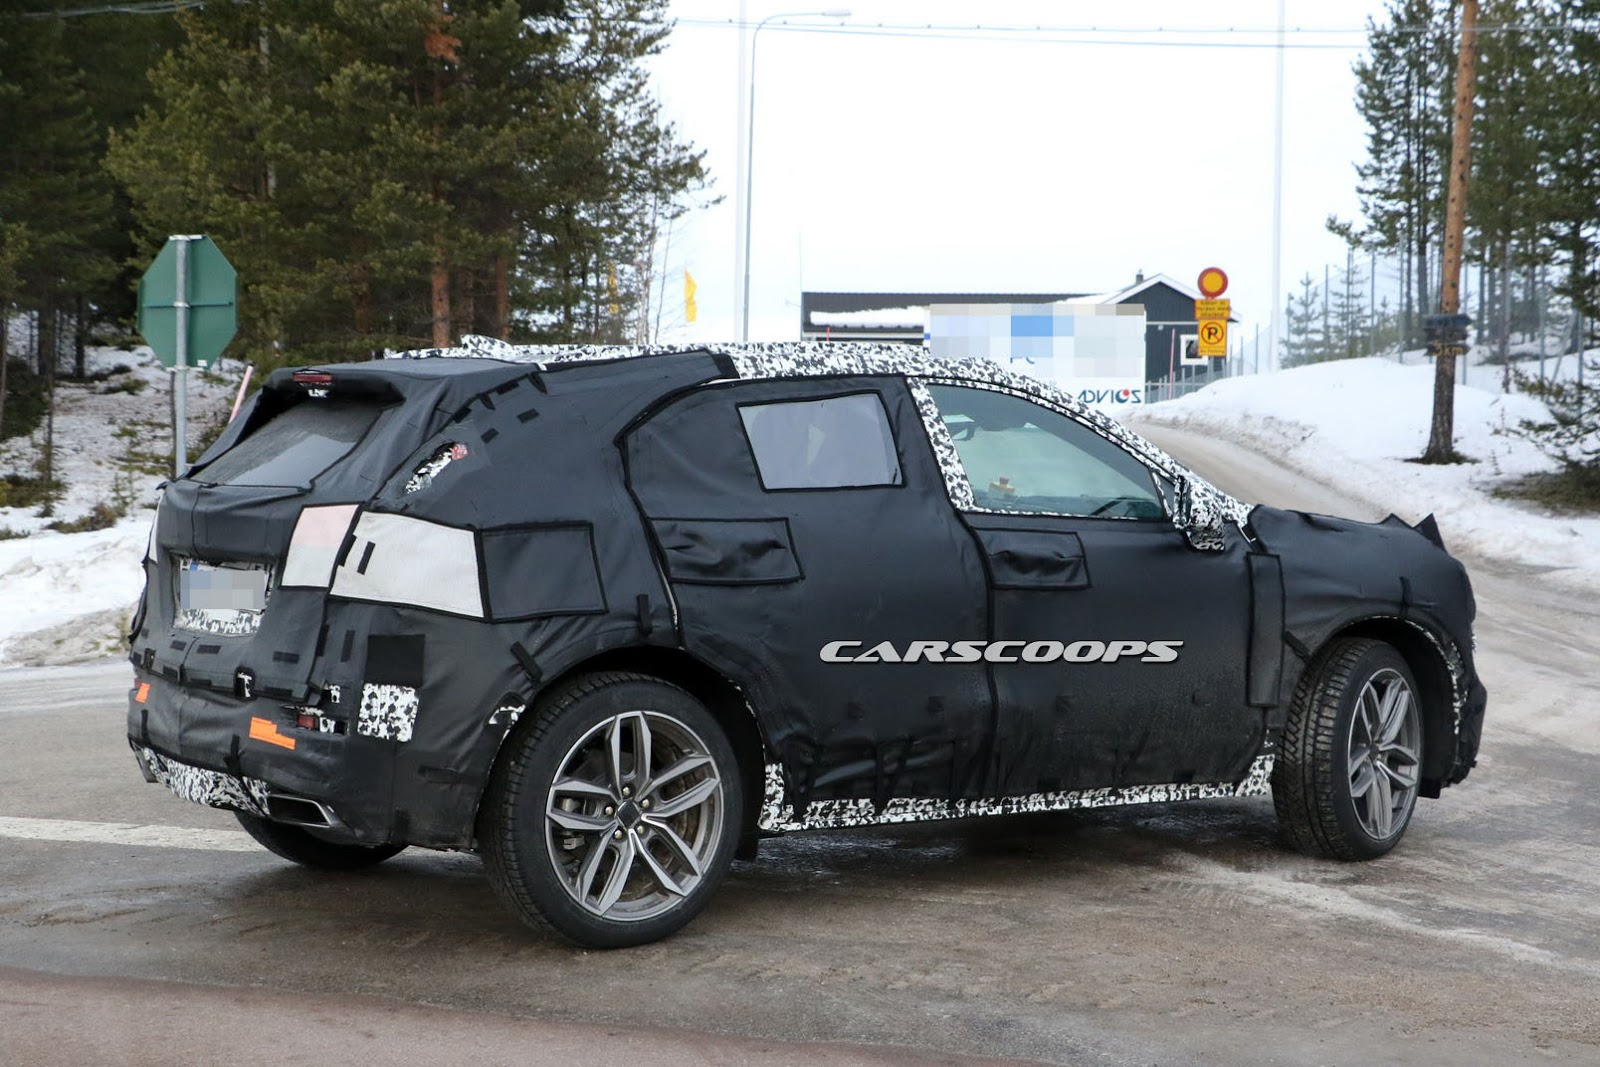 2018 cadillac xt3 compact suv spied better late than never carscoops. Black Bedroom Furniture Sets. Home Design Ideas